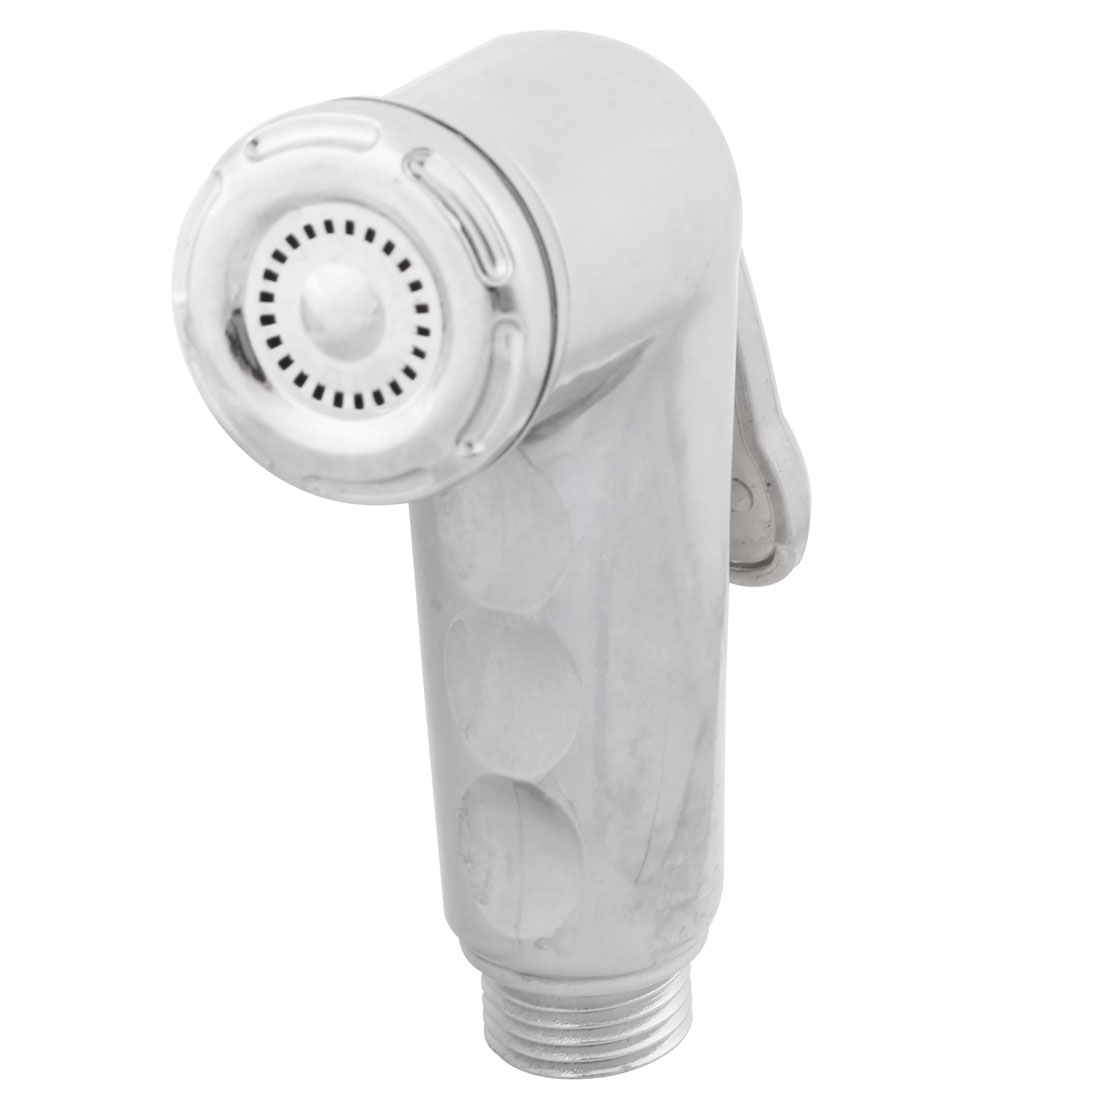 Closestool Bathroom Metal Water Shower Handgrip Hand Held Bidet Silver Tone